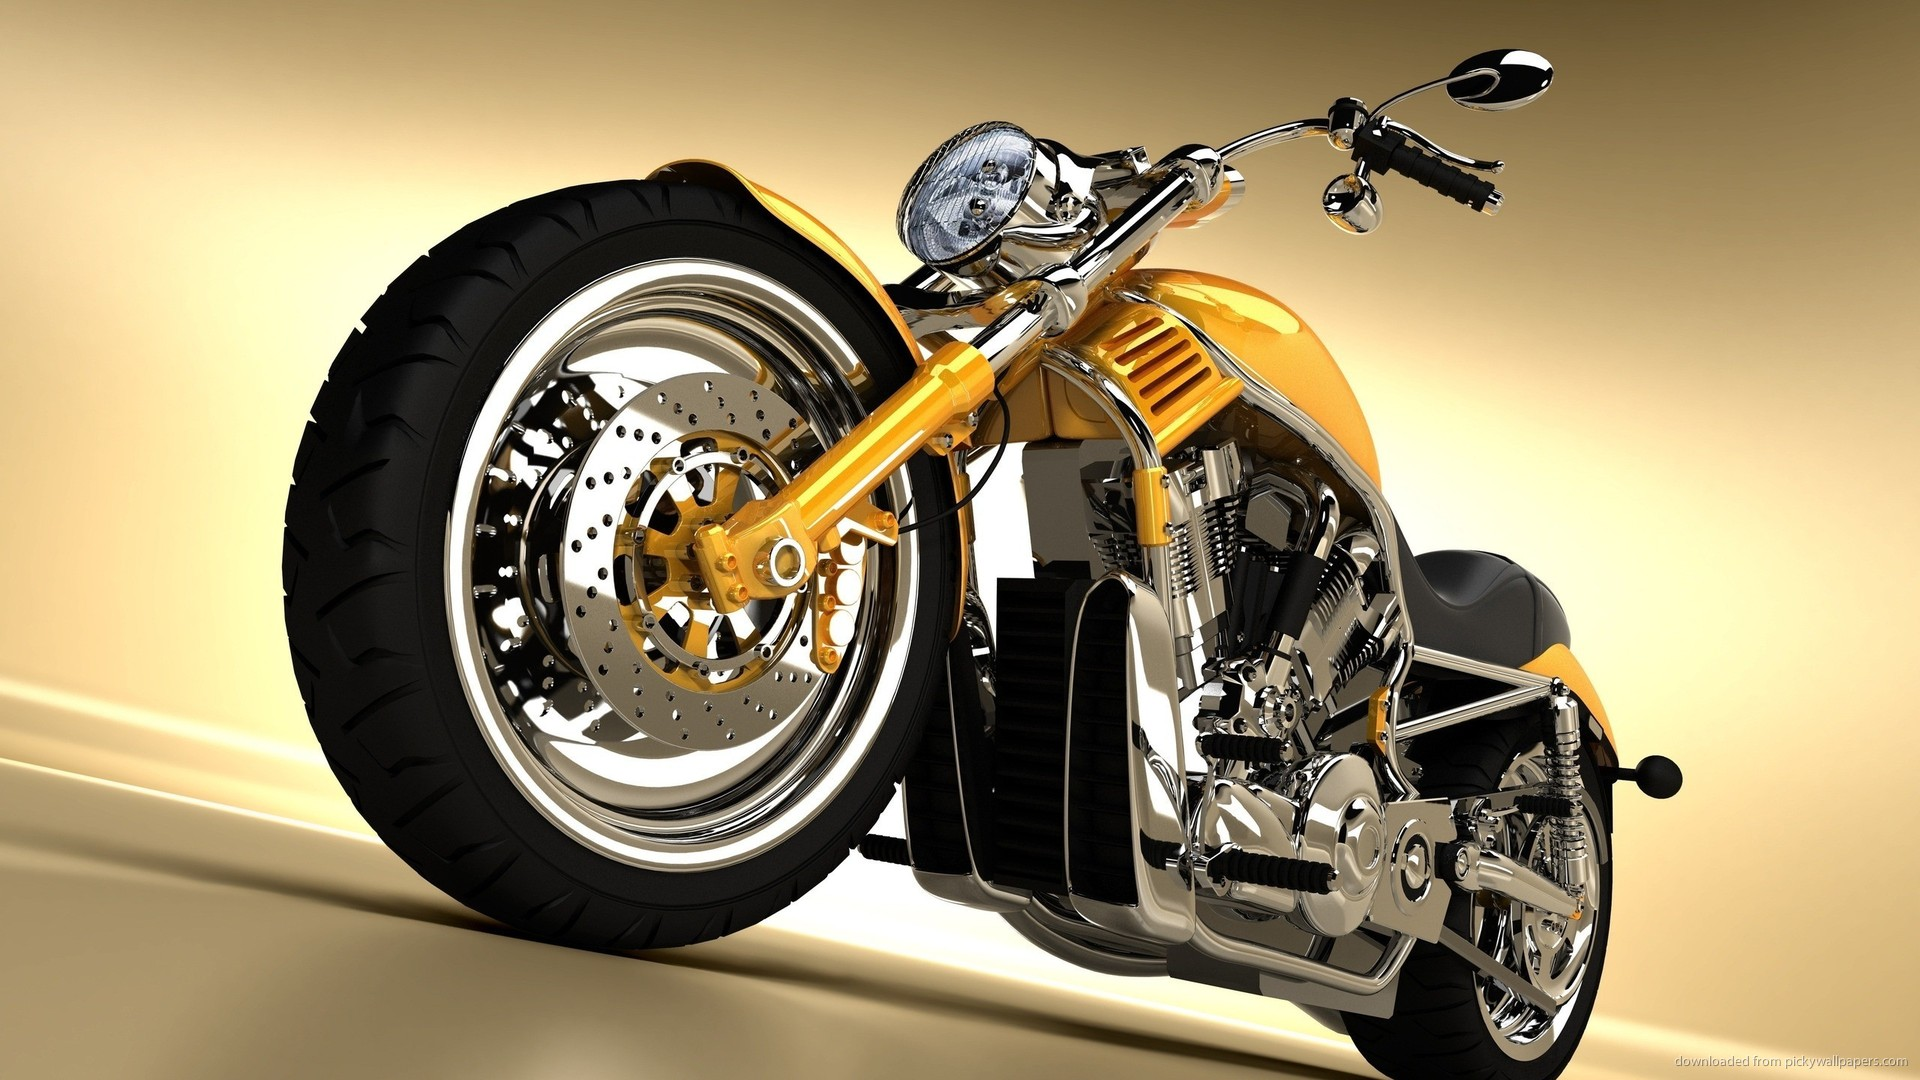 Cars Vehicules Motorcycles Harley Davidson Motorcycle Wallpaper 1920x1080